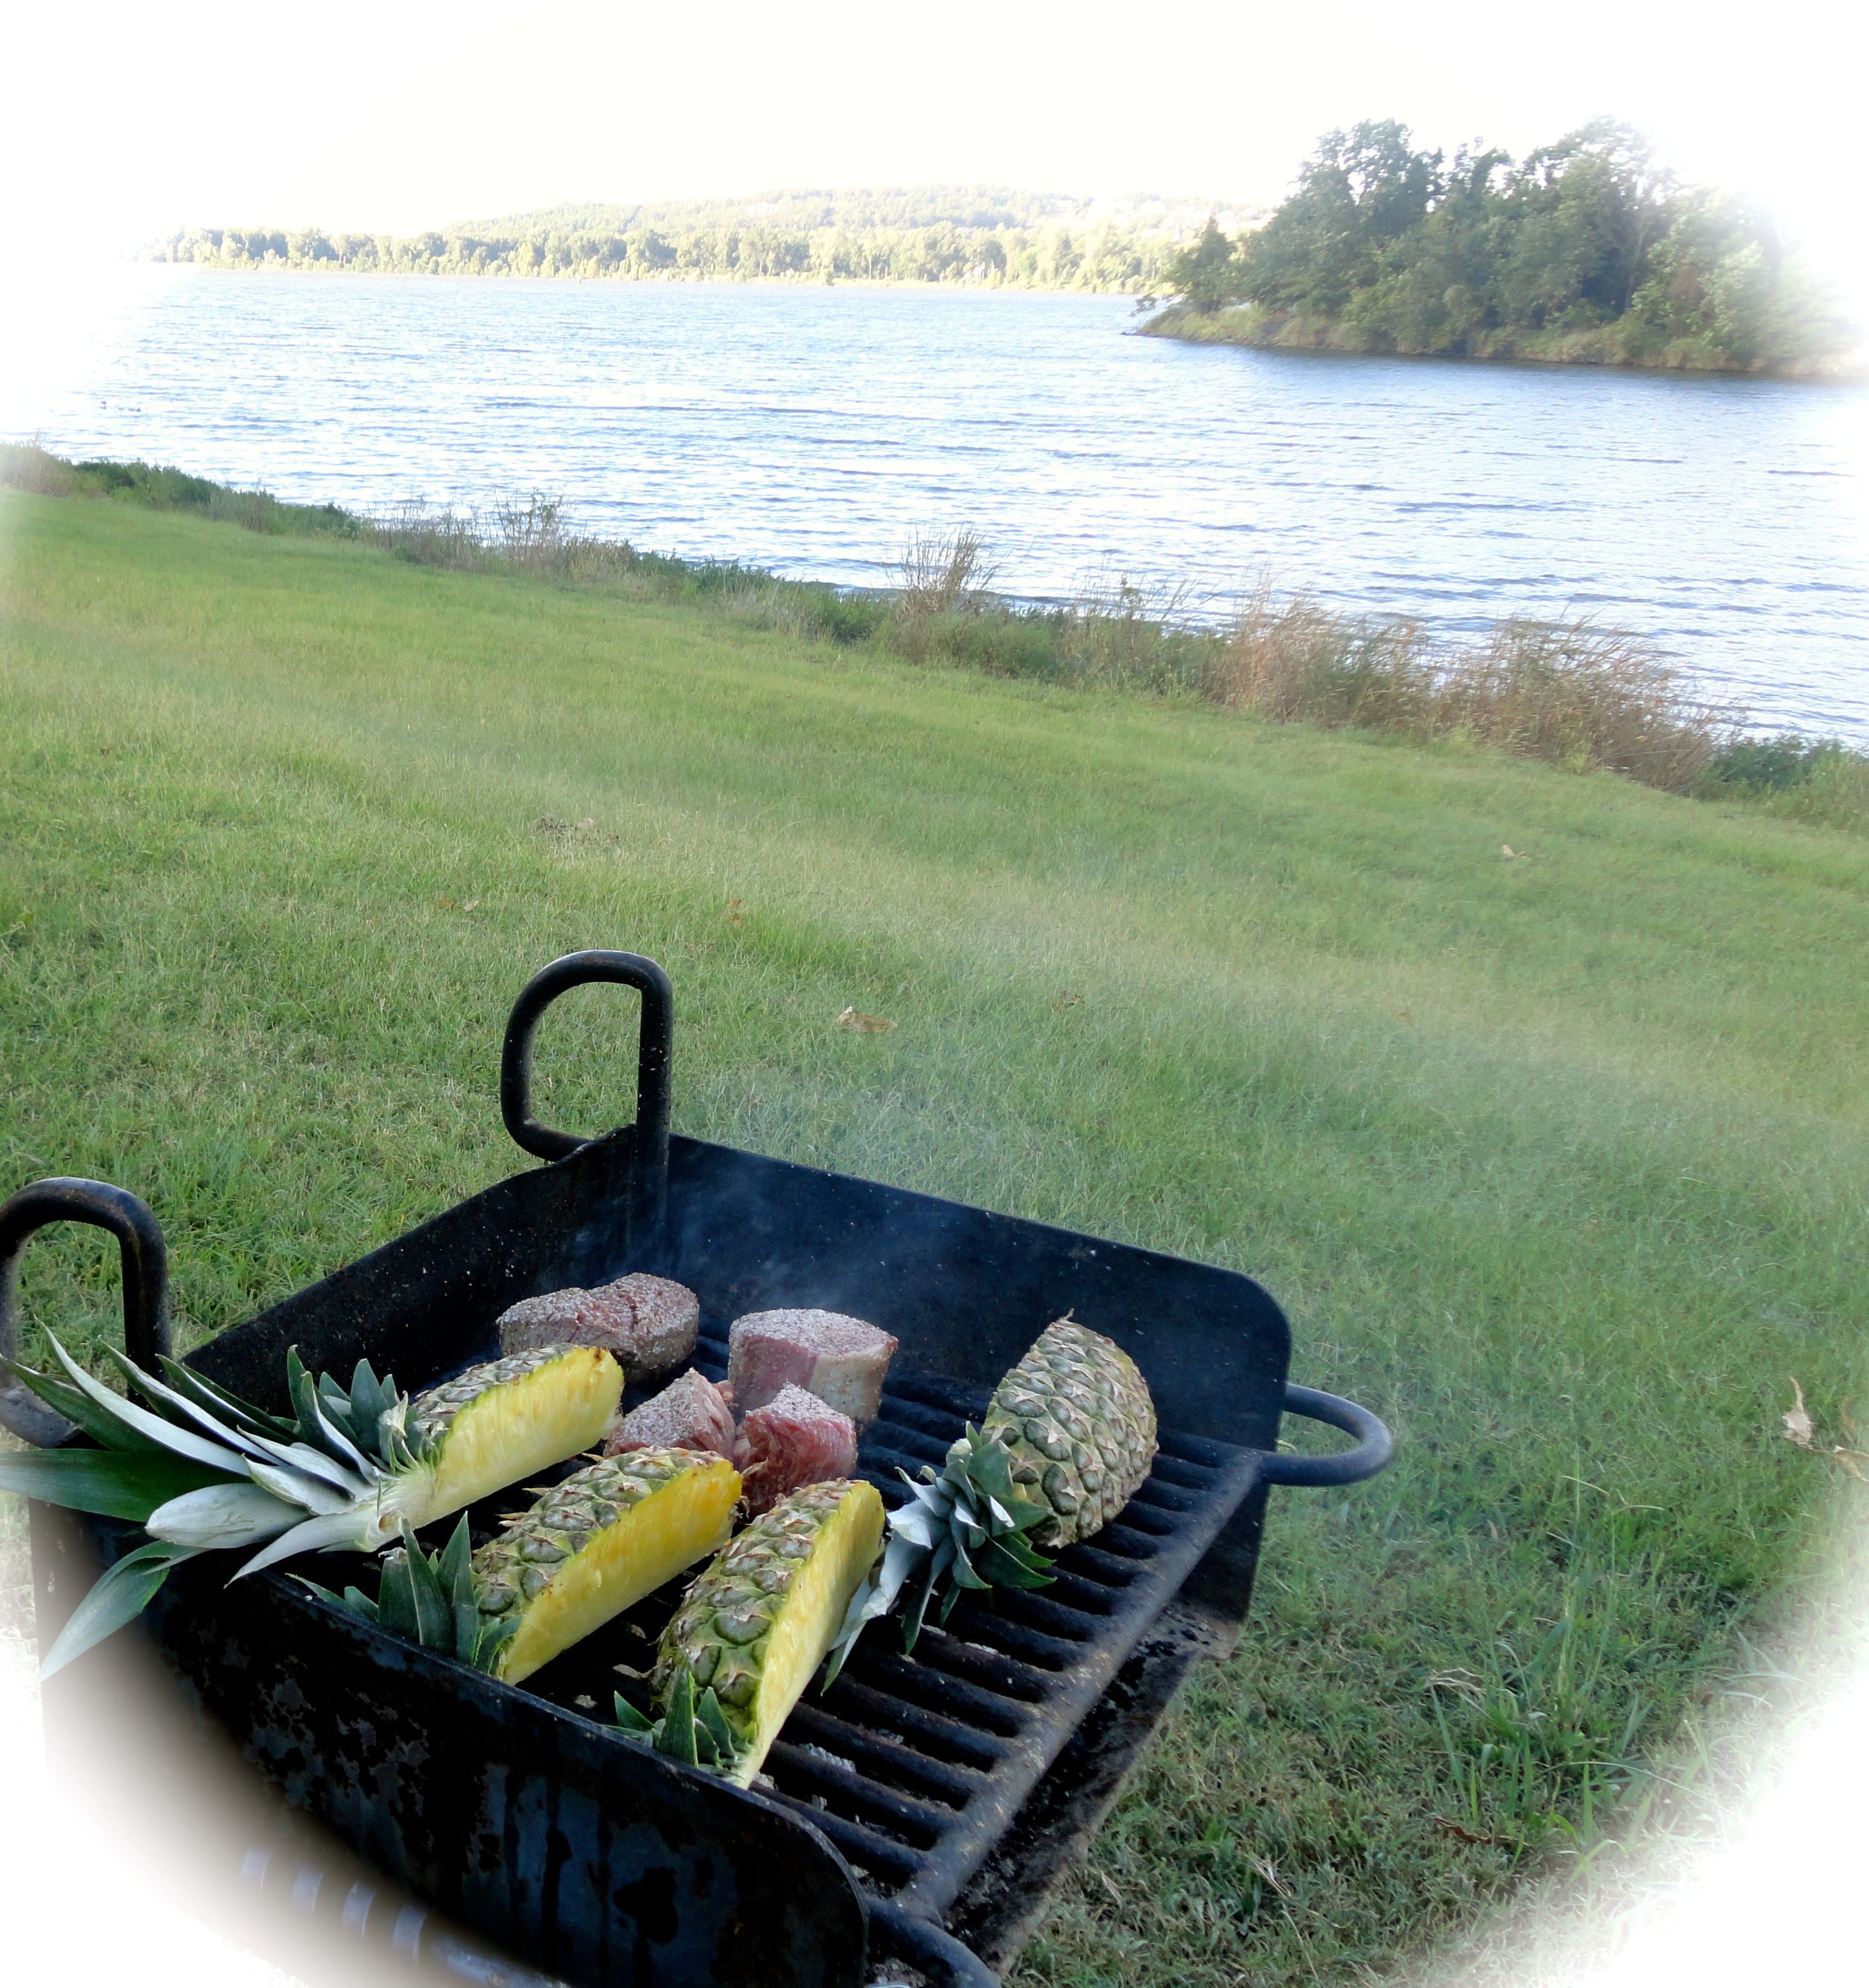 camp grill and river